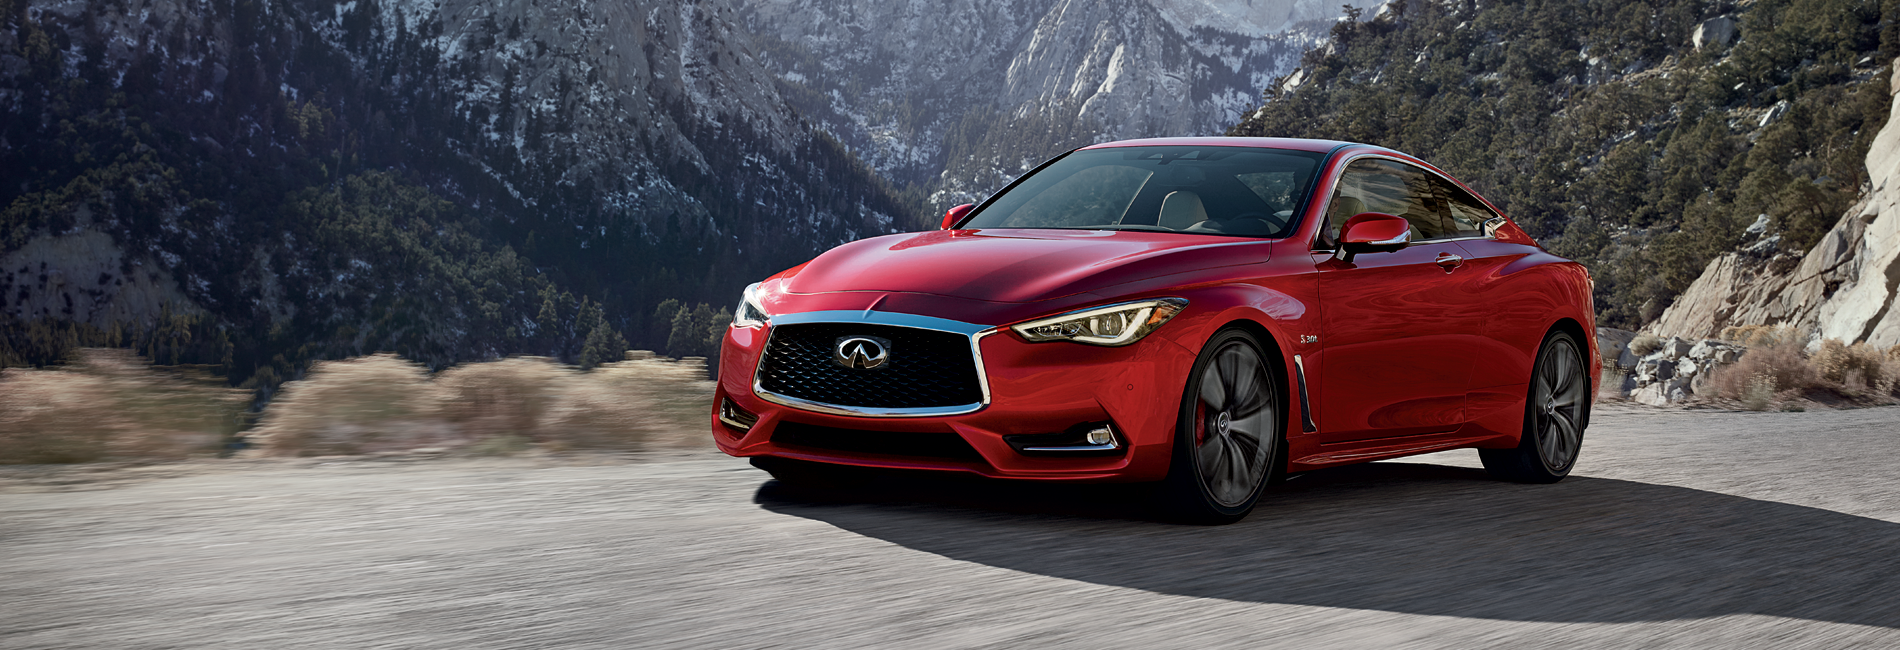 2018 INFINITI Q60 for Sale in Chicago, IL